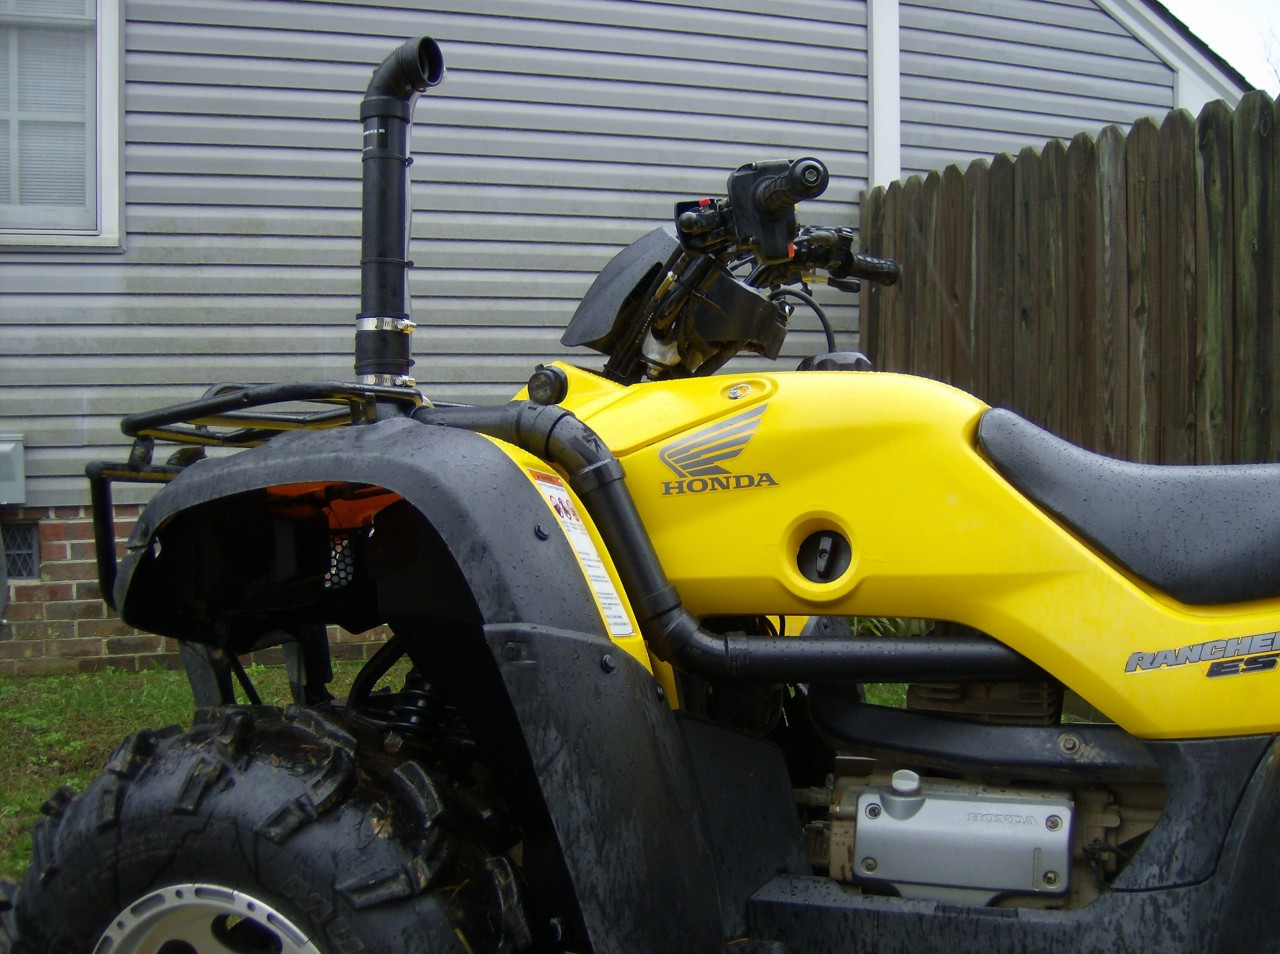 Snorkel Kit For Honda Rancher 350 04 06 Extreme Snorkels Wiring Diagram Besides Polaris 2014 Rzr 900 On Winch Click Here More Images